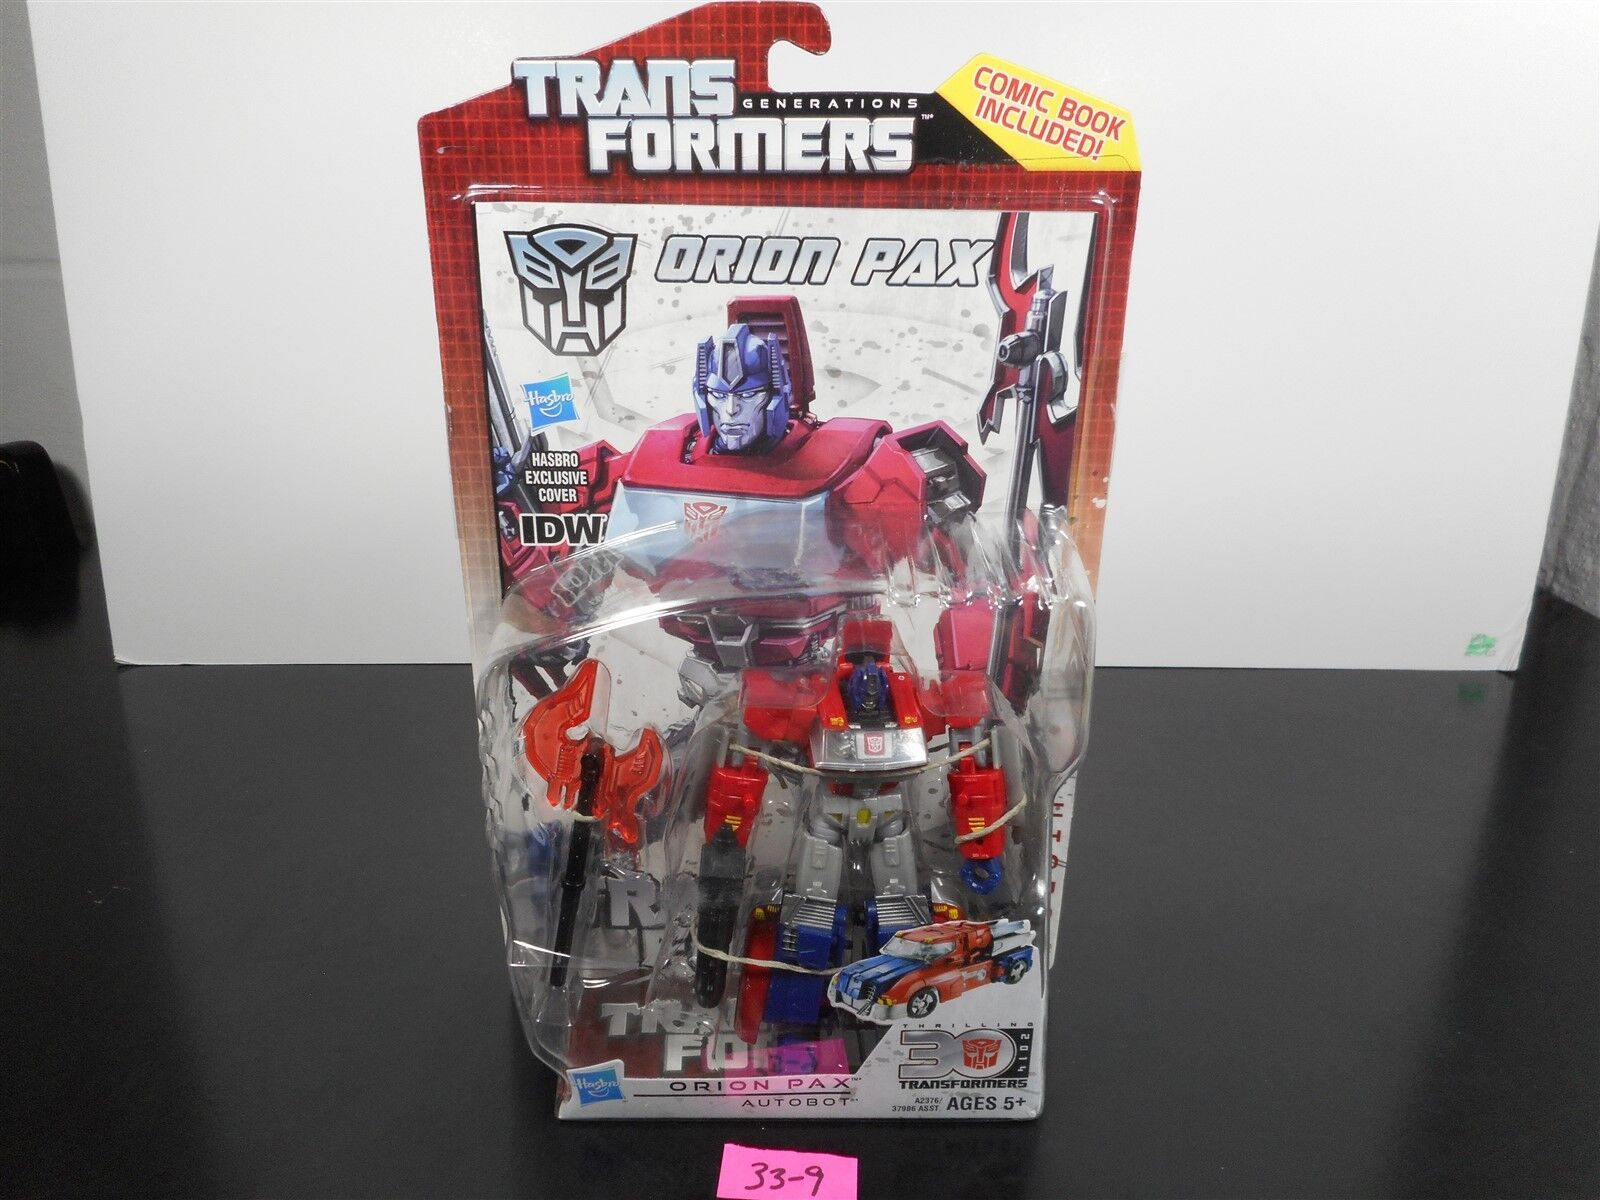 MINT & SEALED   TRANSFORMERS GENERATIONS IDW ORION PAX 30TH ANNIVERSARY MOC 33-9